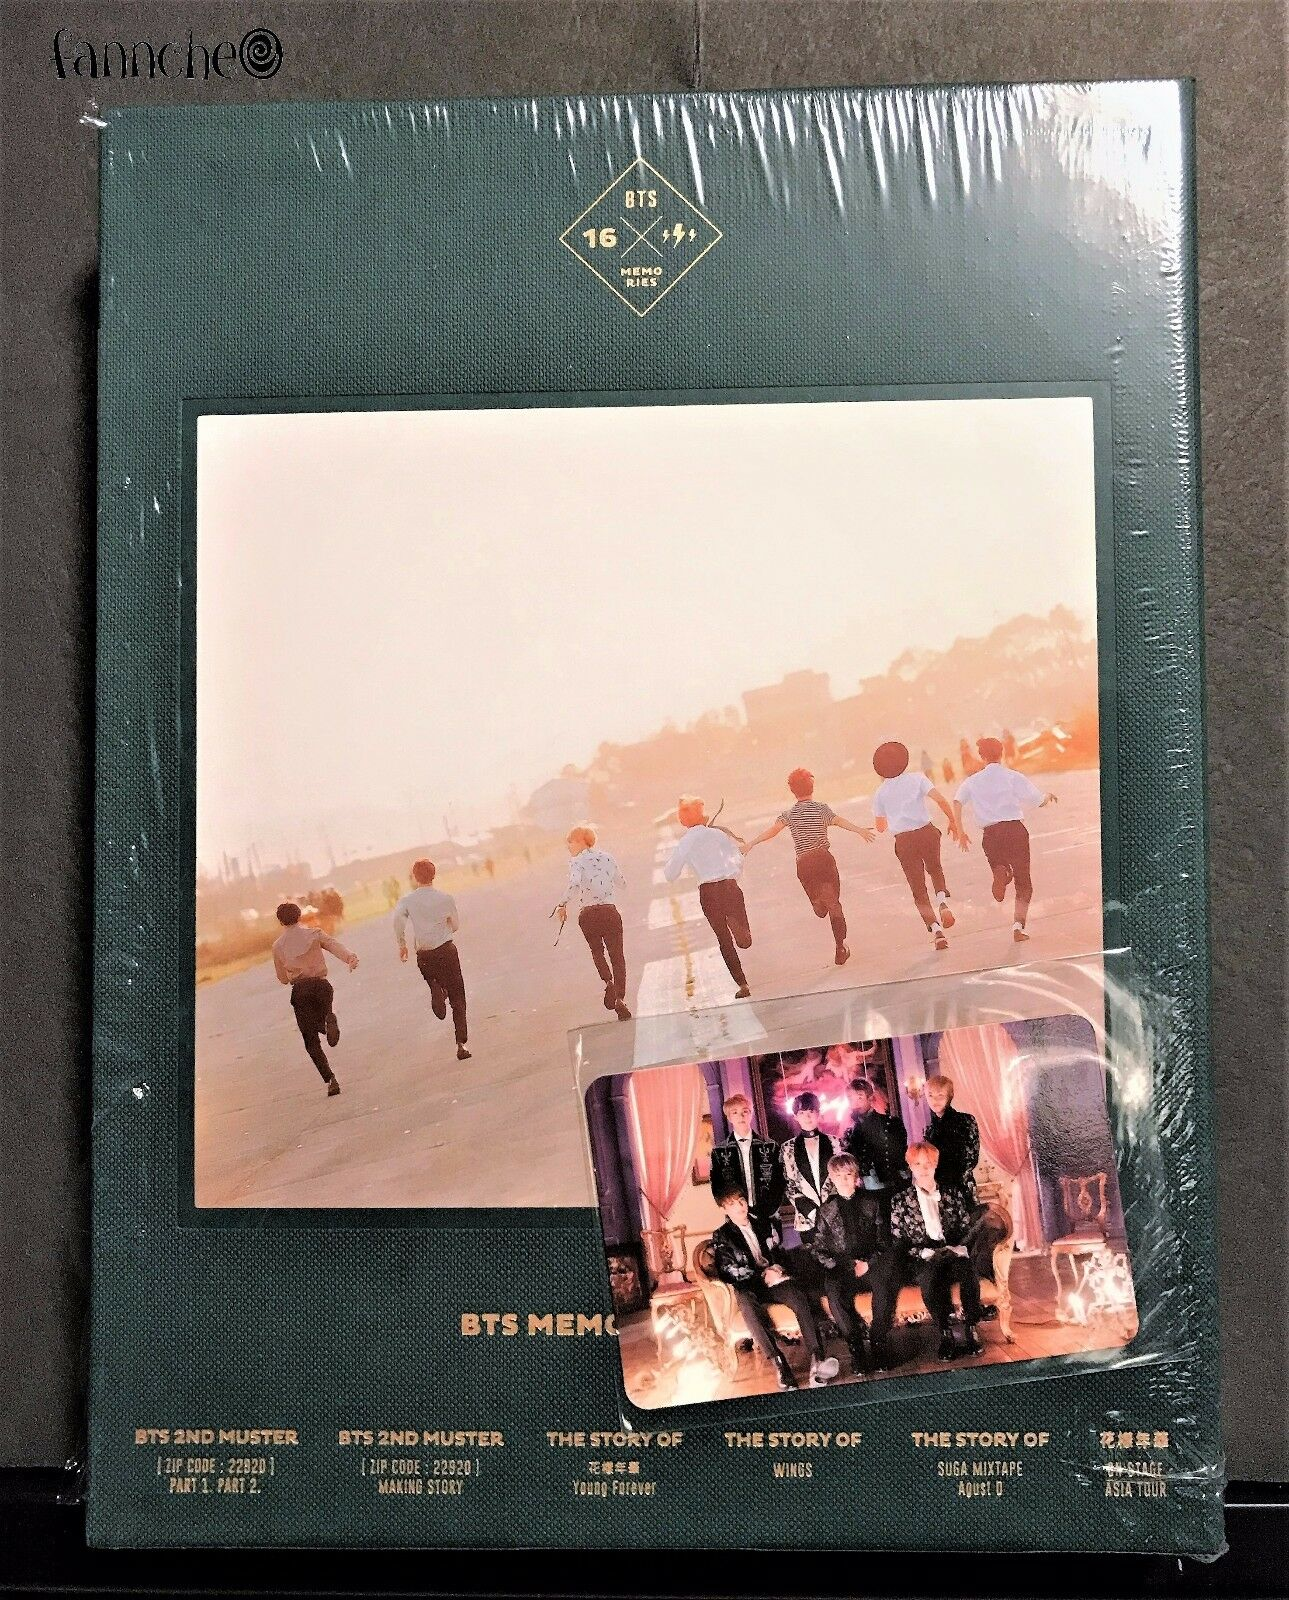 Bts Memories Of 2016 Dvd 4 Disc Digipack With 188p Photo Book K Pop Bangtan Boys Live In The Mood For Love On Stage Epilogue Concert Blood Sweat Tears Group Photocard Card